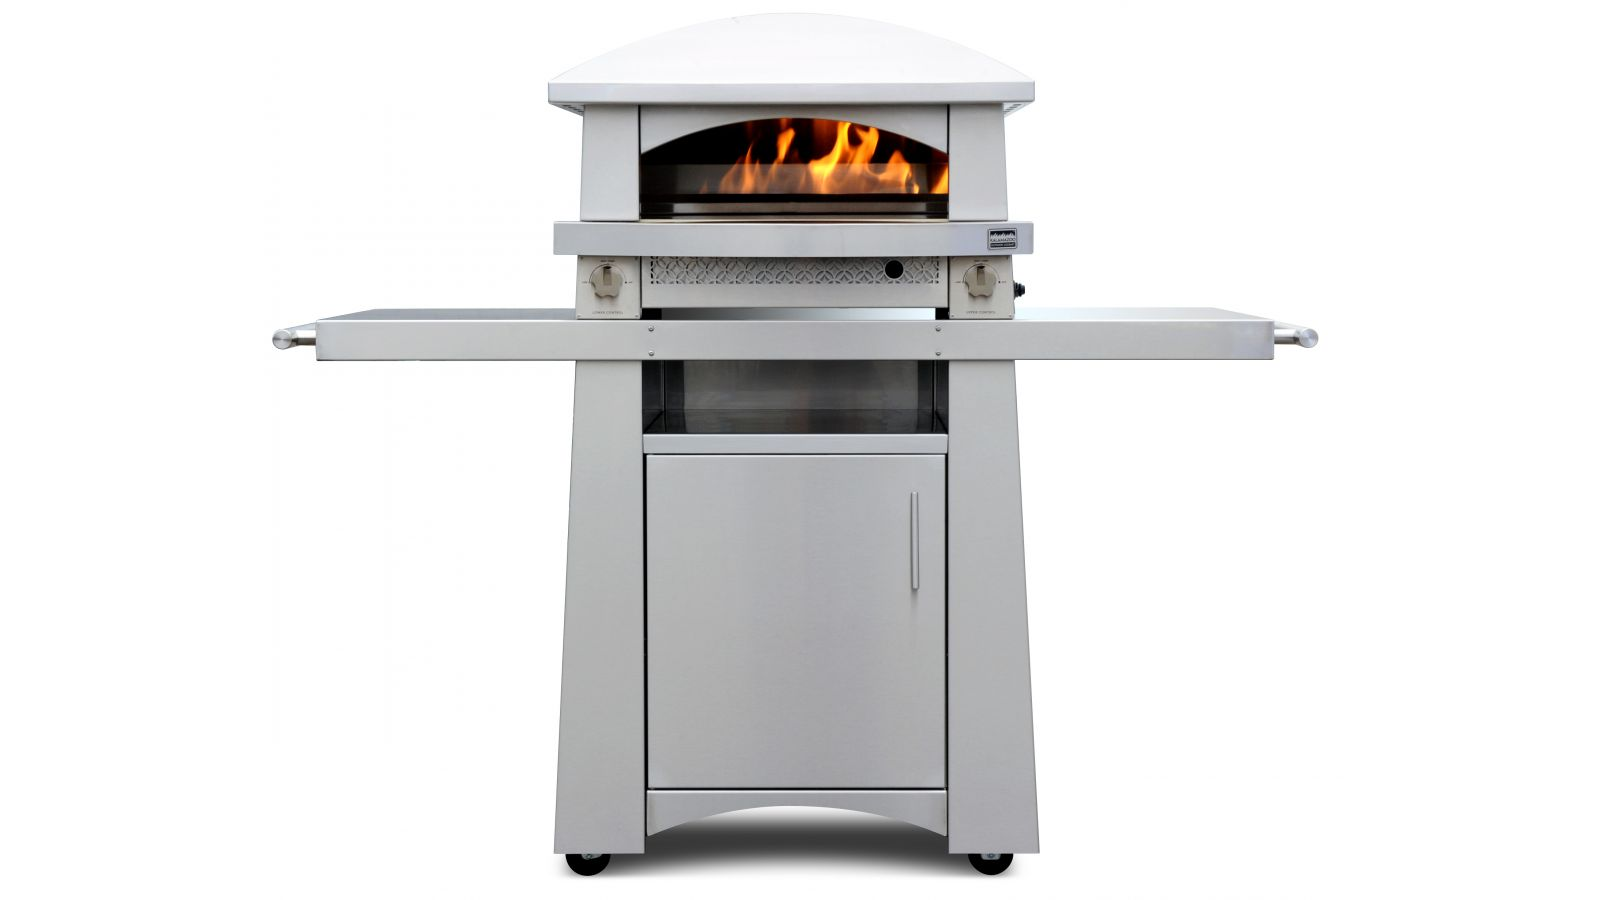 Freestanding Artisan Fire Pizza Oven